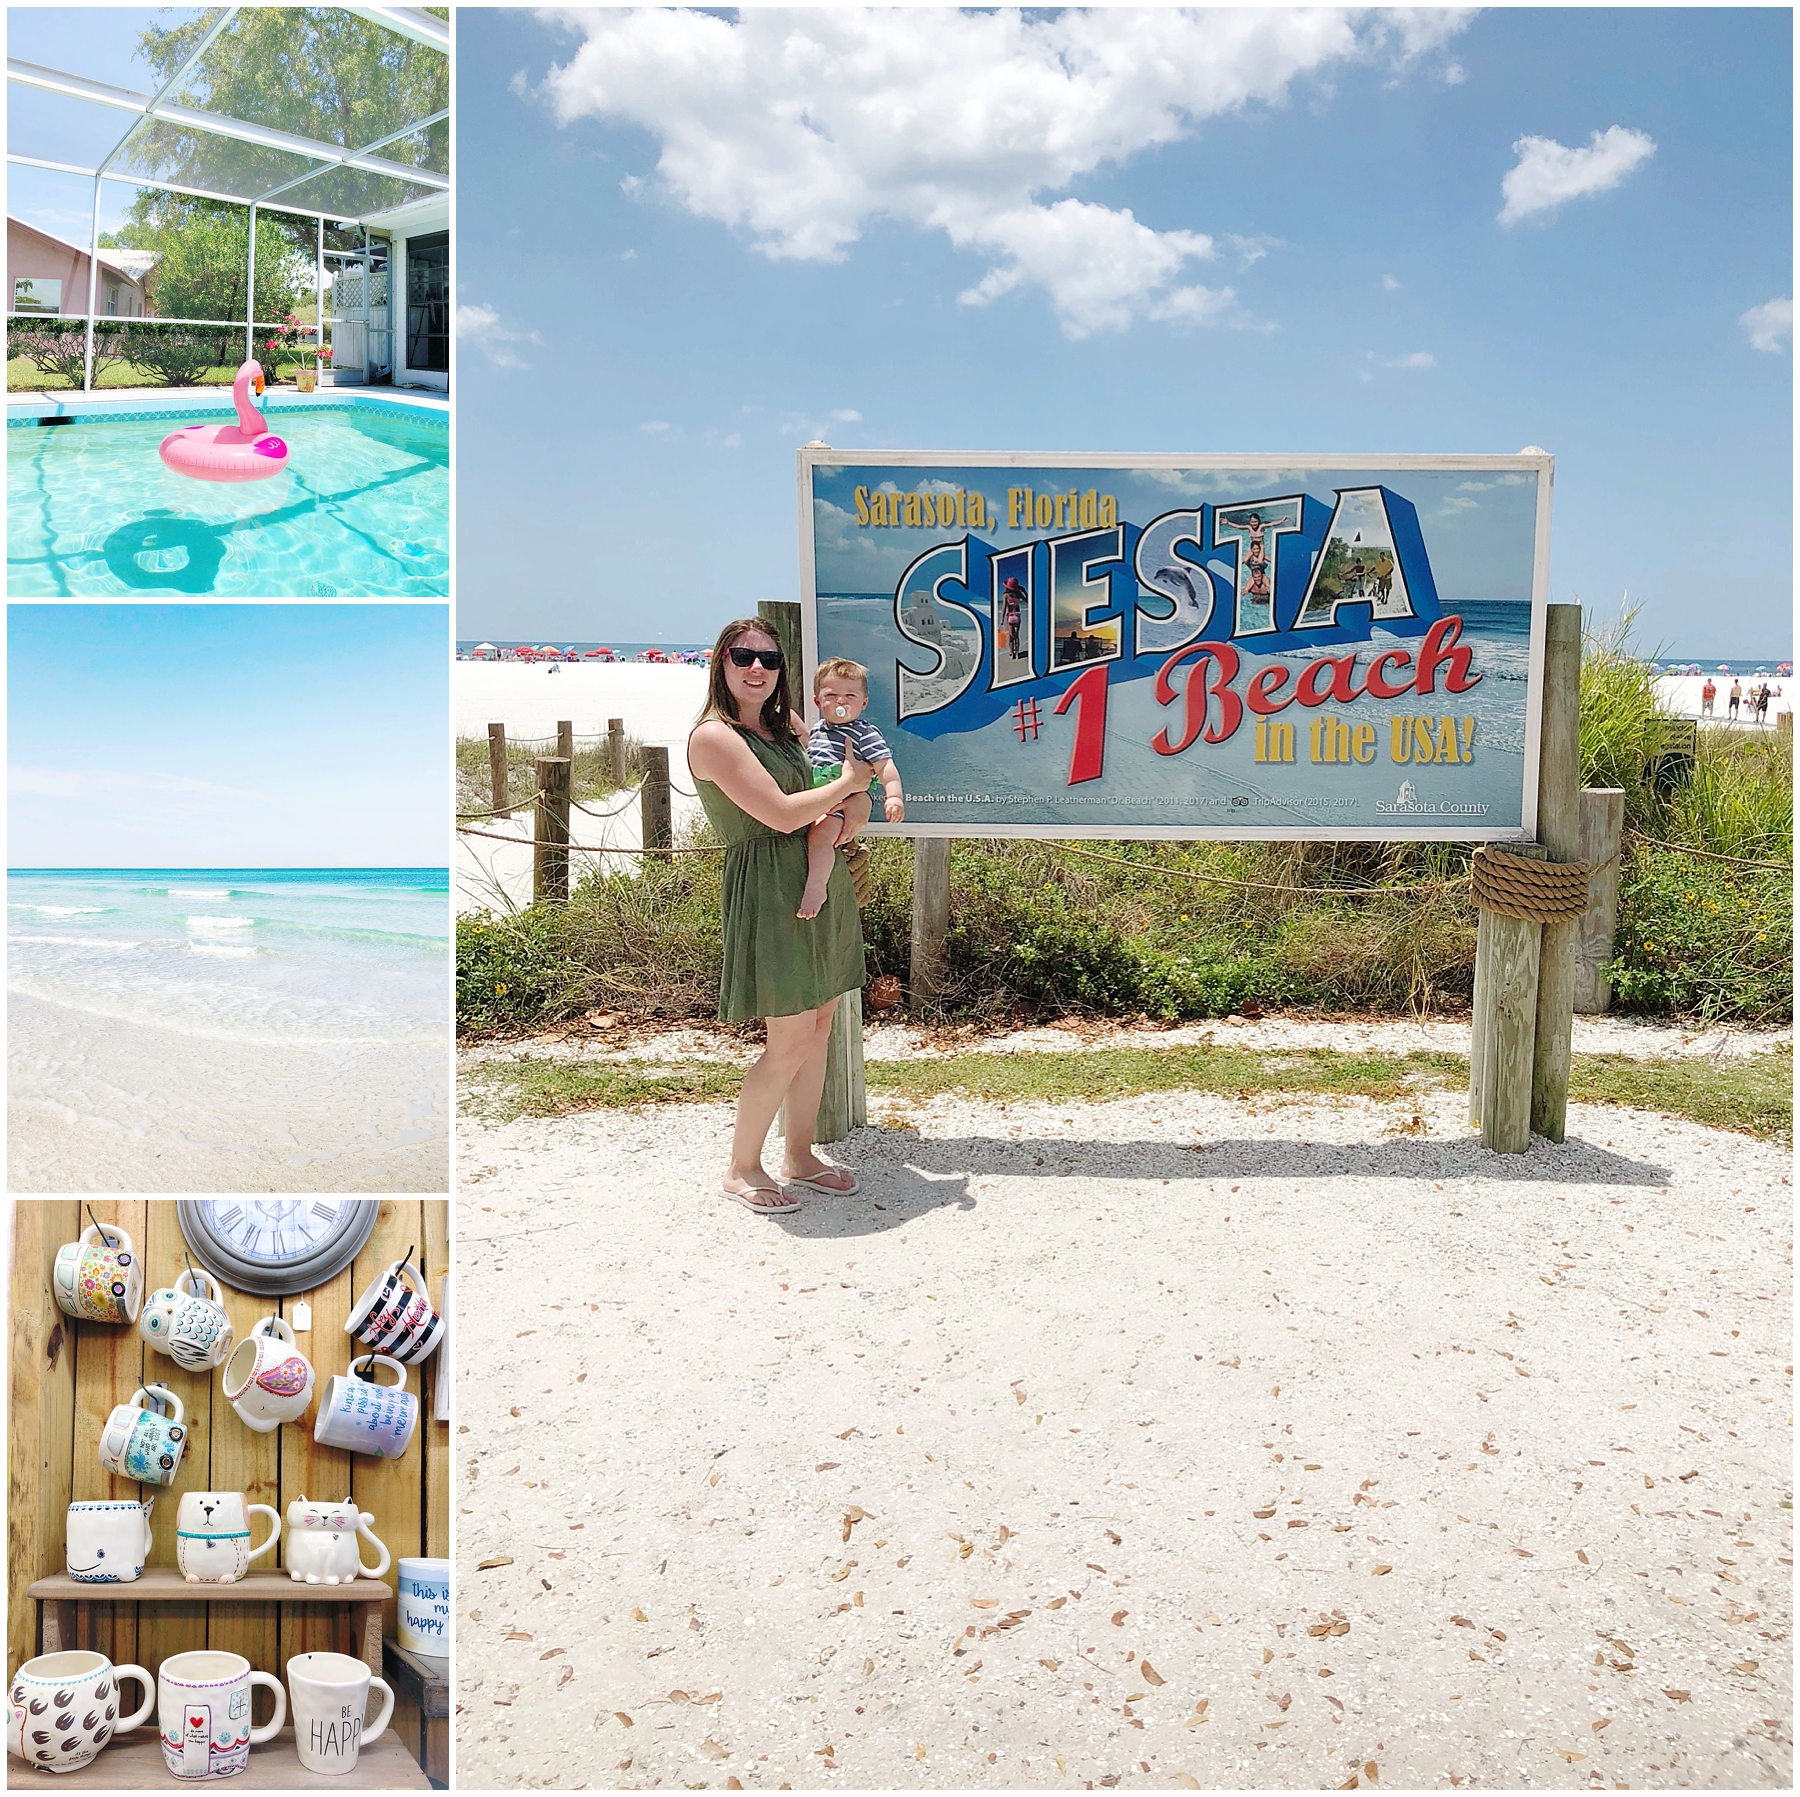 Beach day at Siesta Key, exploring Siesta Key, and pool time at grandpa's house! I had such a great time on vacation with Lindsey, Paulie, and Logan!!